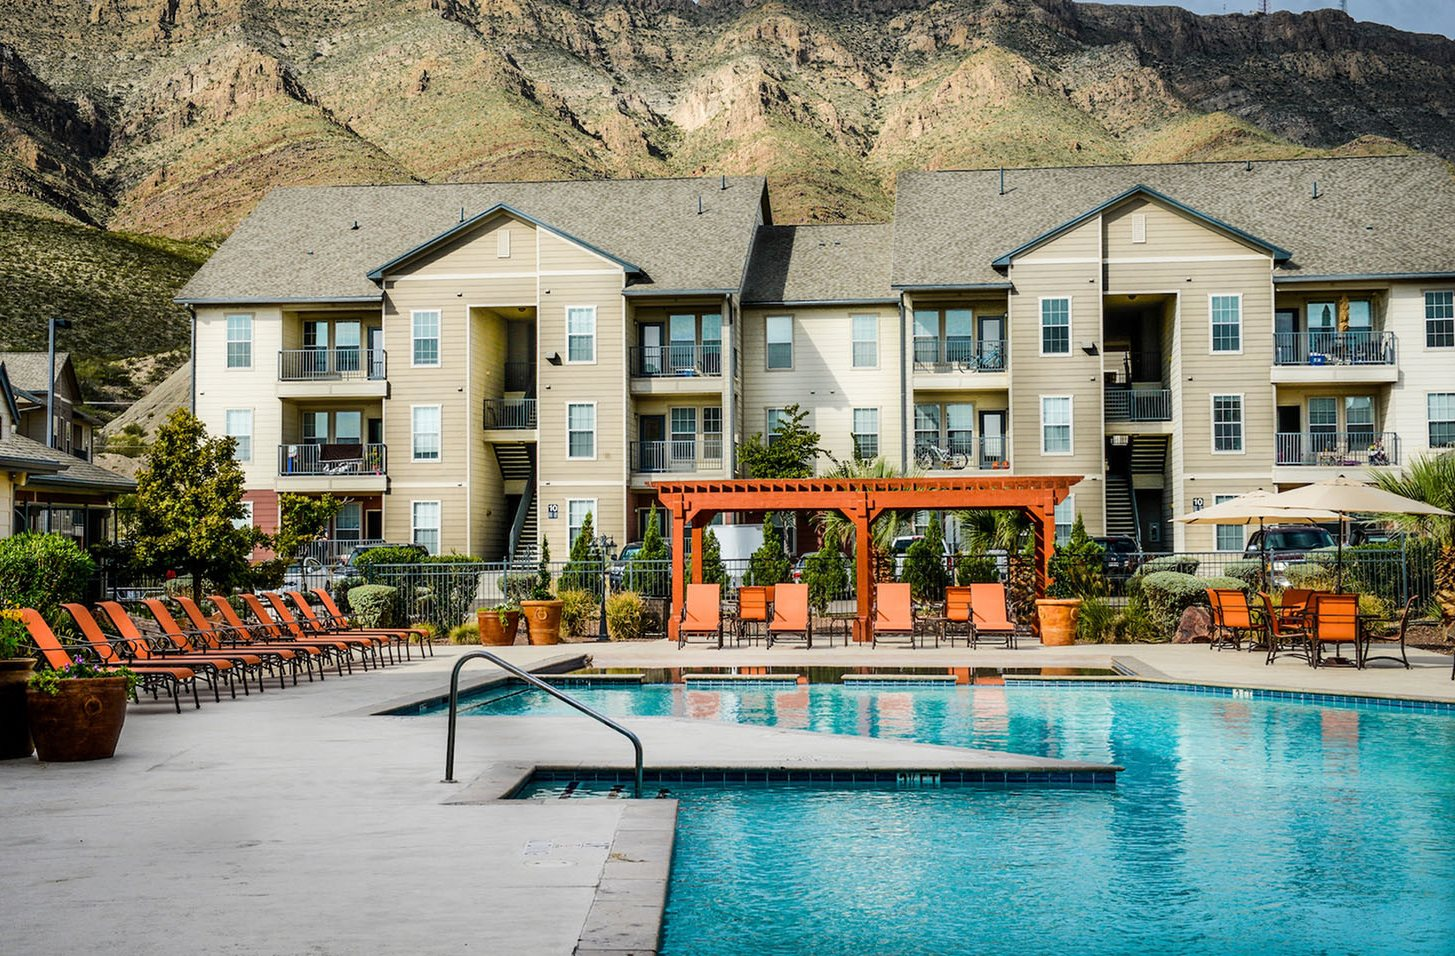 Pool and lounge chairs El Paso, TX 79930 l Independence Place Apartments For Rent